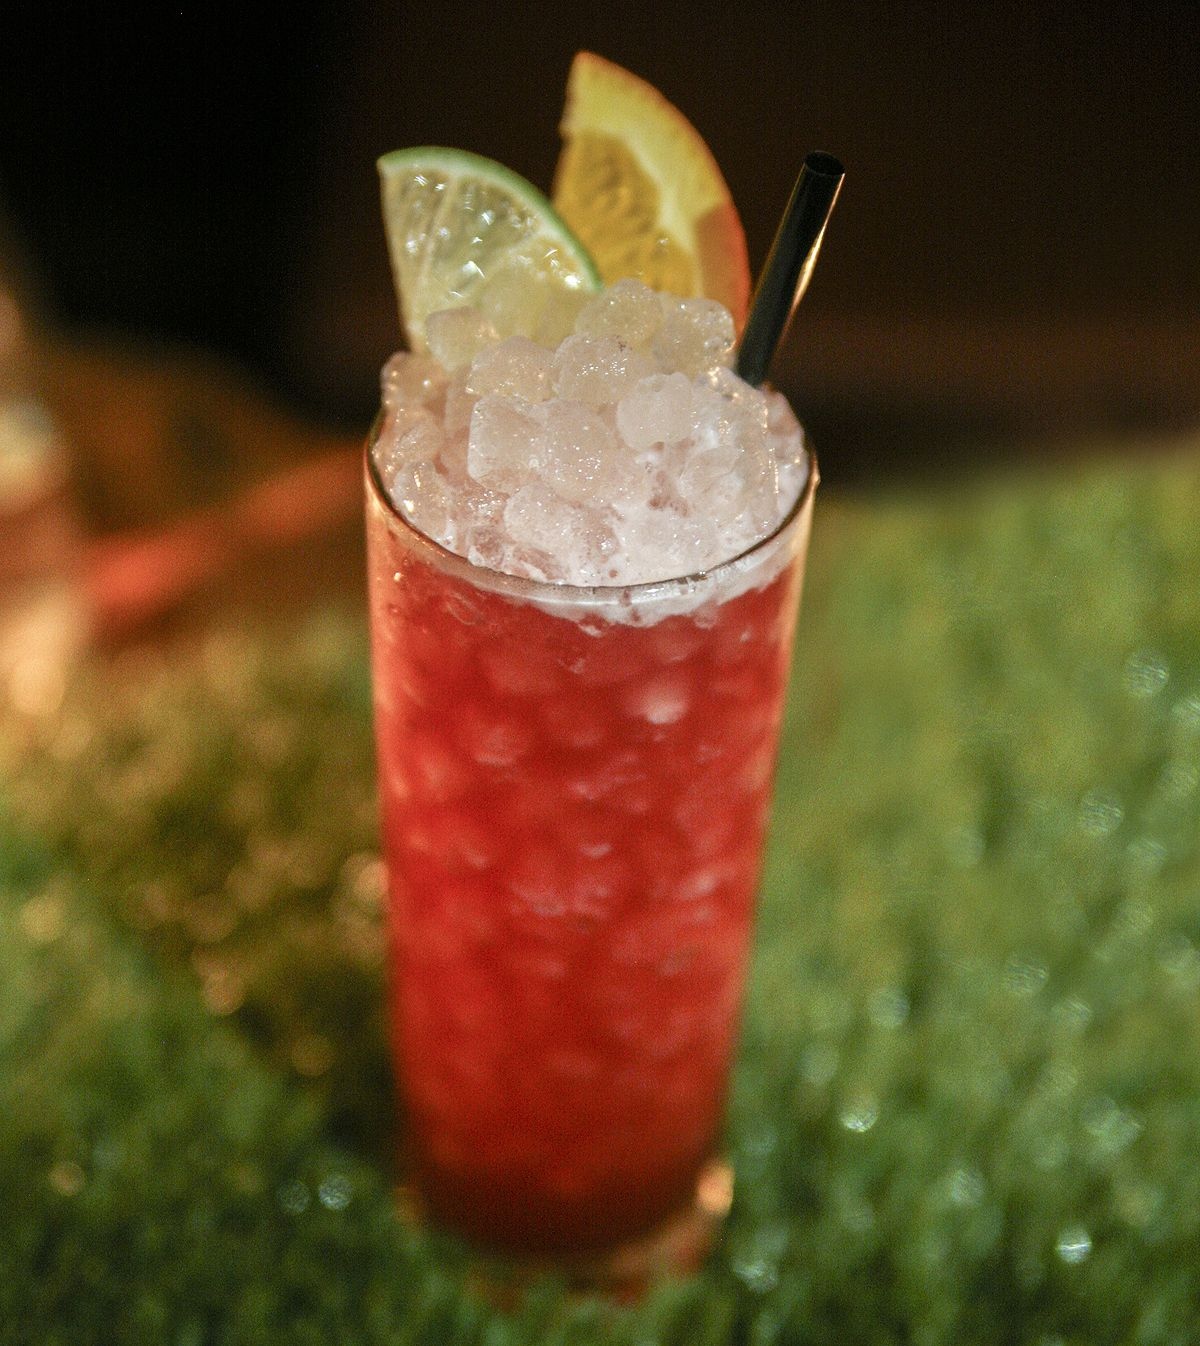 Chilled Drink Of The Week: Cold In The Shadows